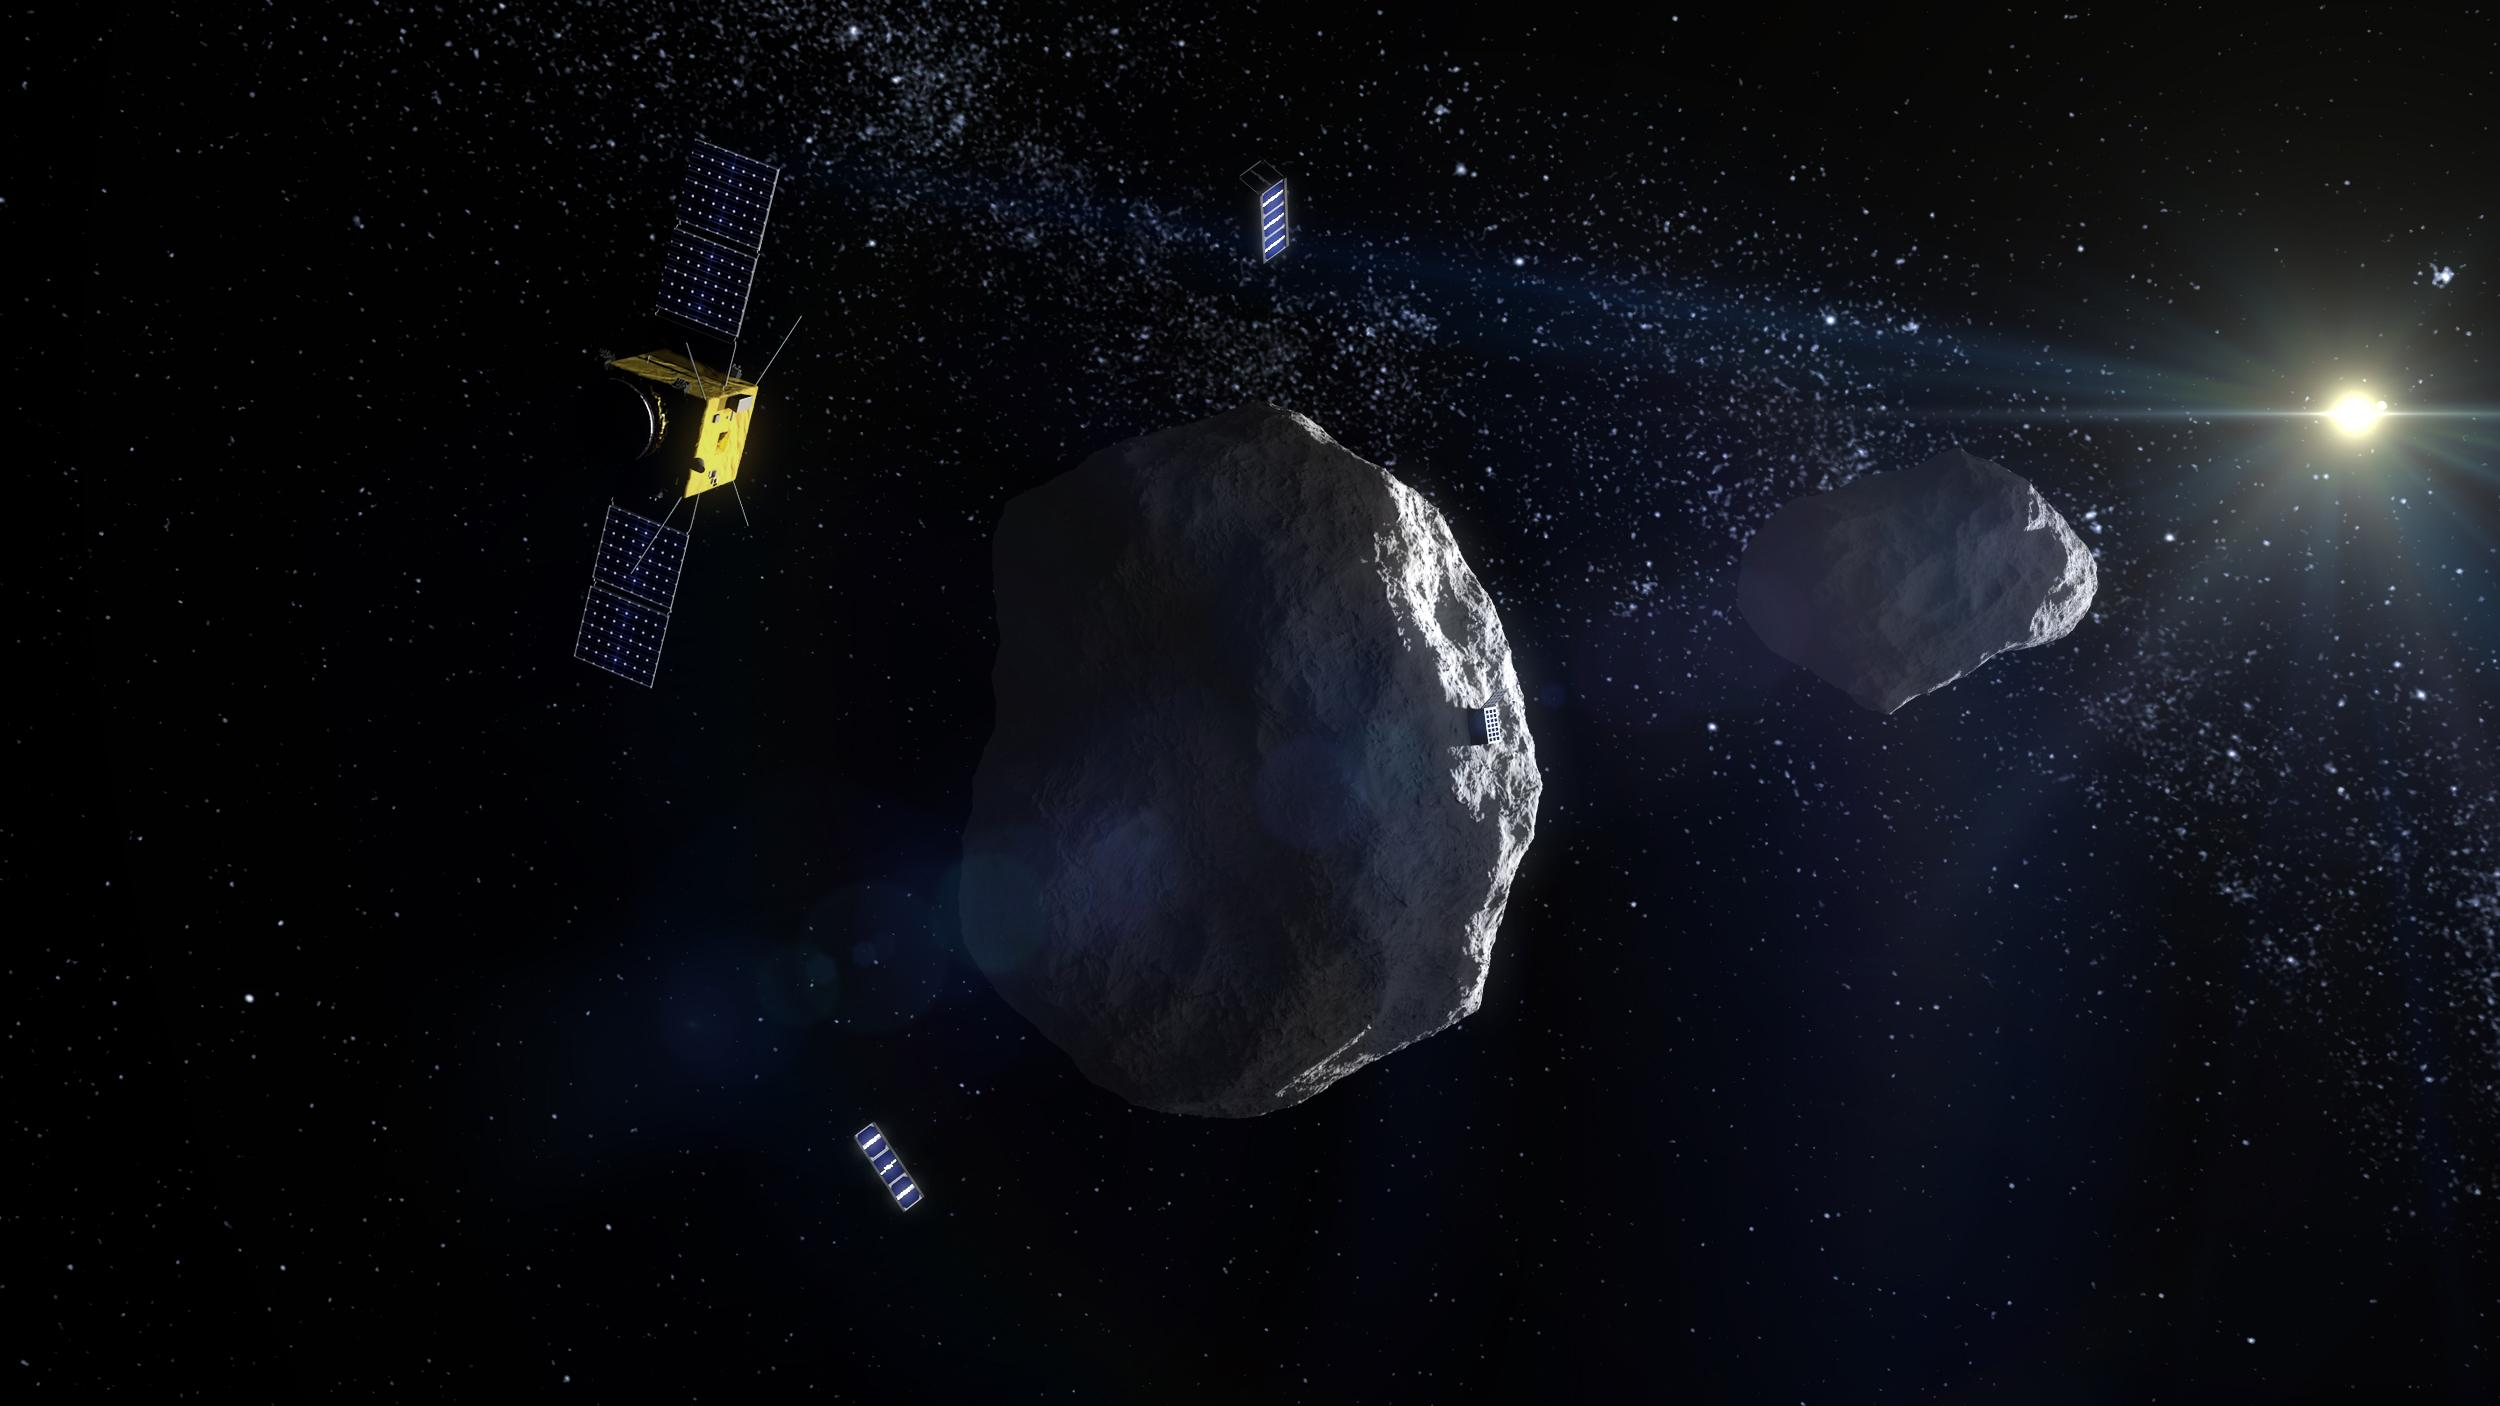 Scientists and Engineers from United States and Europe Grouping Up to Deflect Asteroids